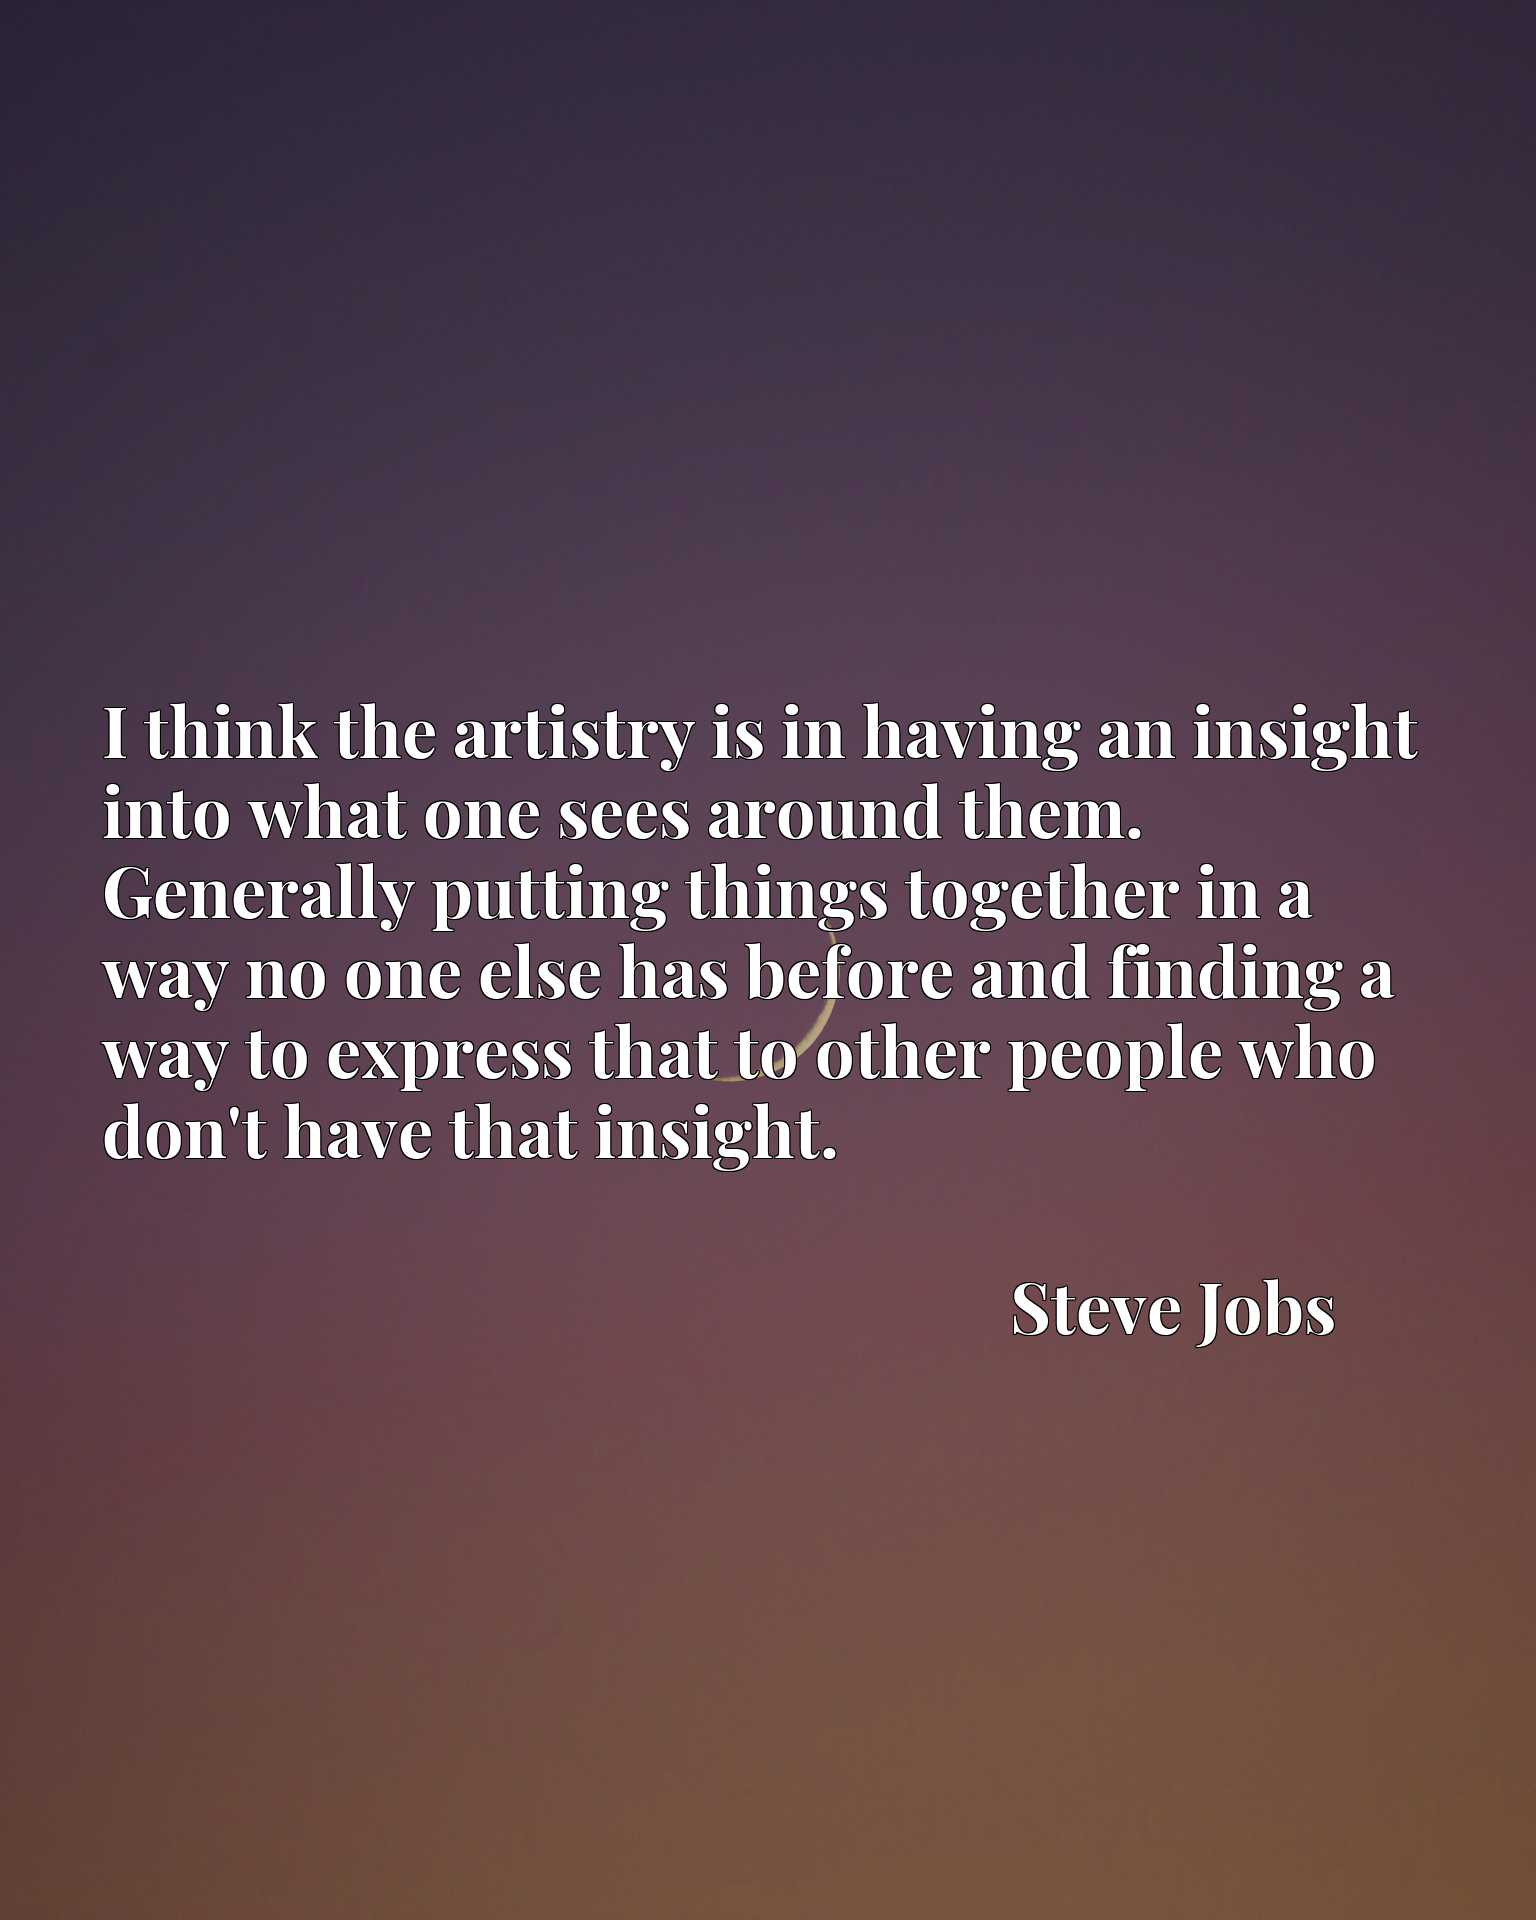 I think the artistry is in having an insight into what one sees around them. Generally putting things together in a way no one else has before and finding a way to express that to other people who don't have that insight.